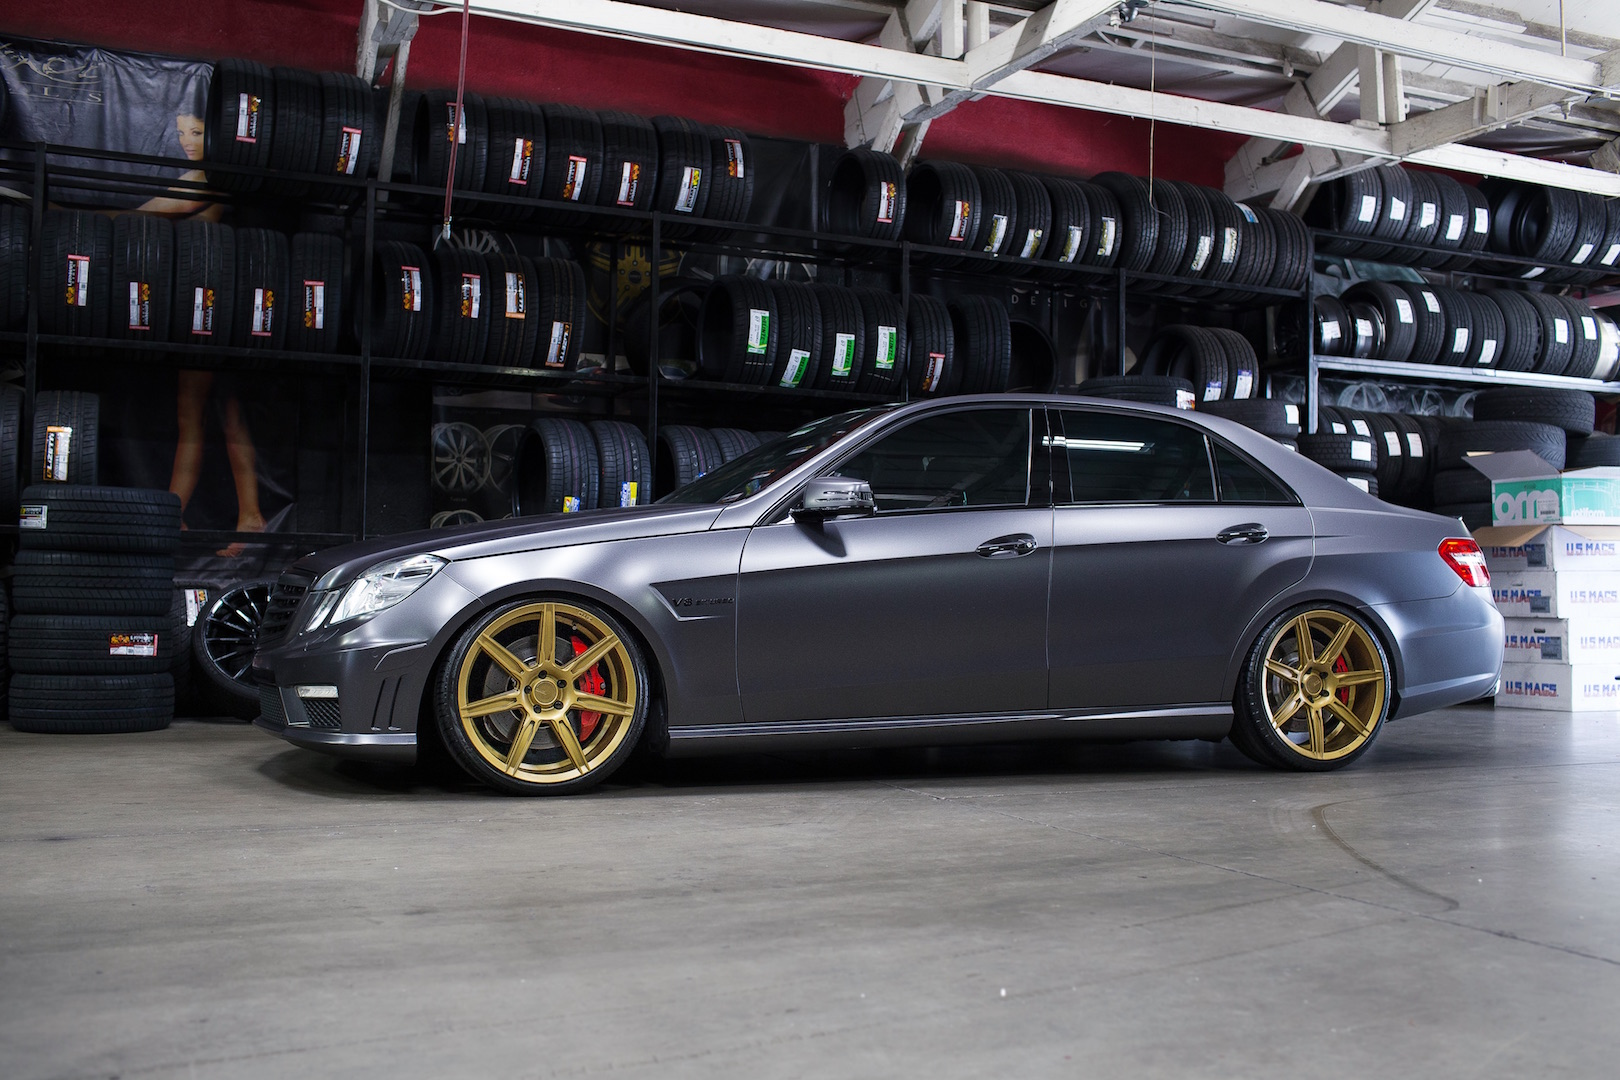 Mercedes Benz E63 AMG W212 Grey Gold ZS07